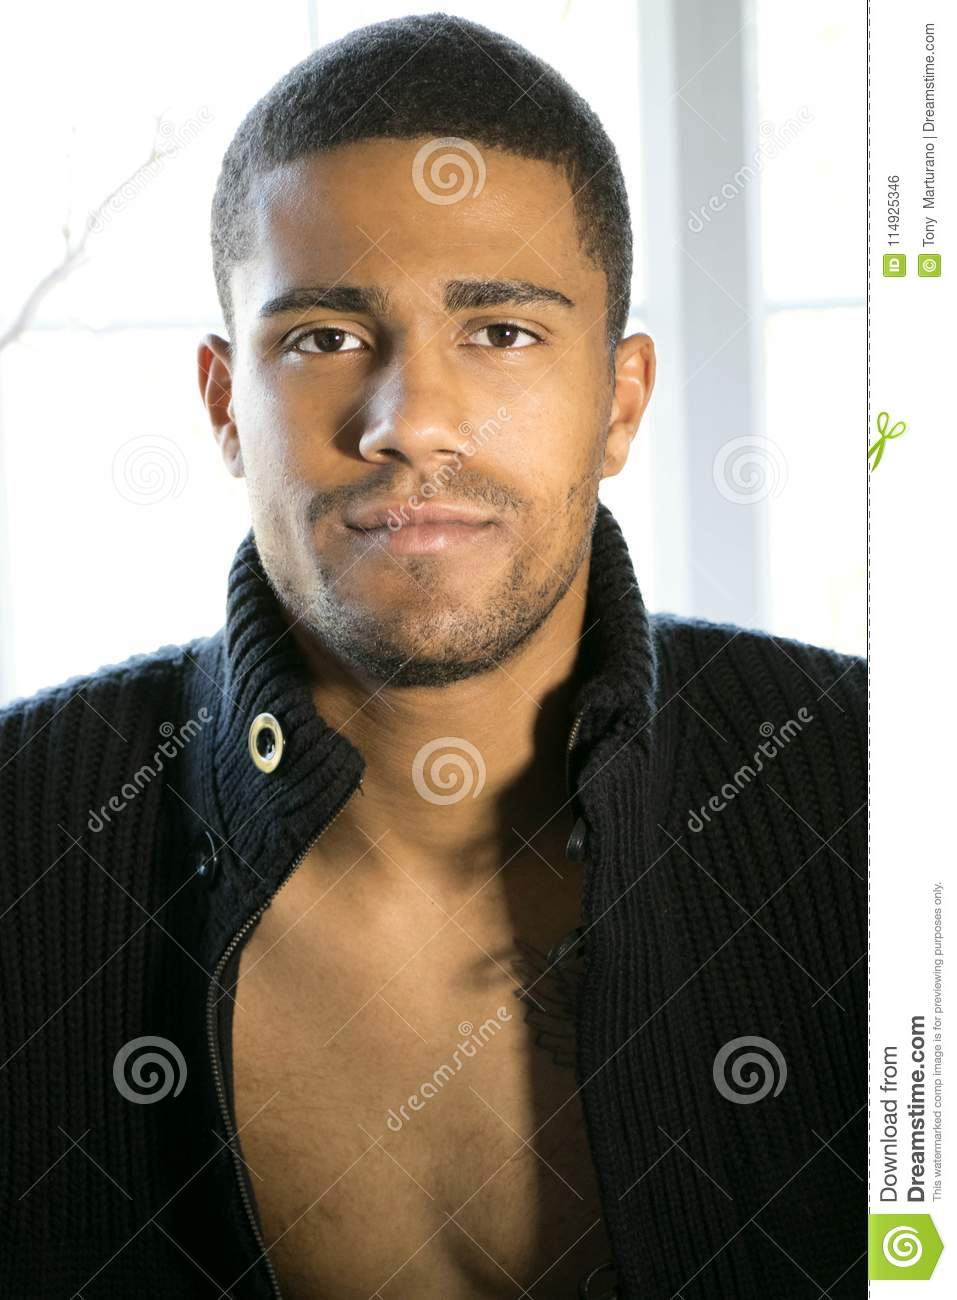 Good looking black men photos